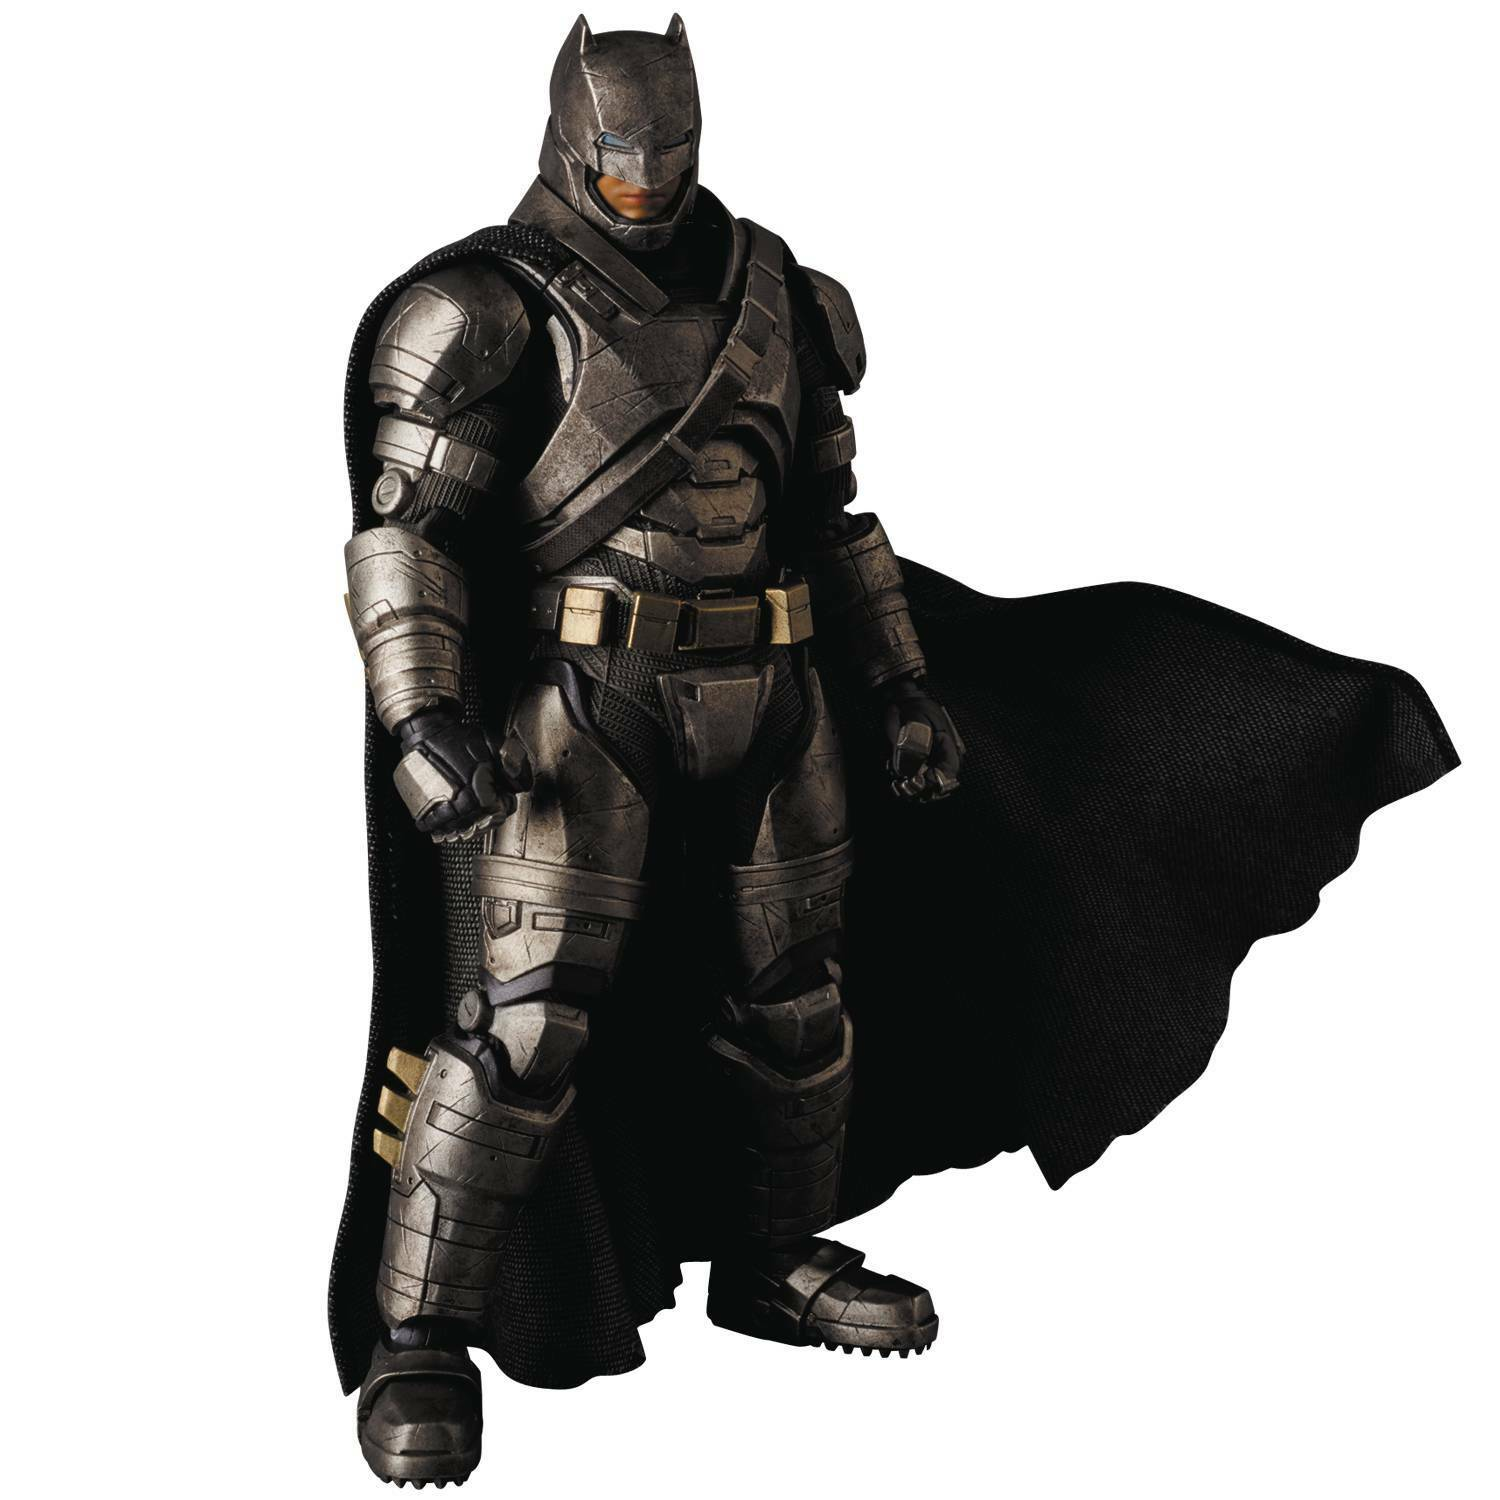 Dc comics batman vs. superman mafex no.023 gepanzerten batman action - figur